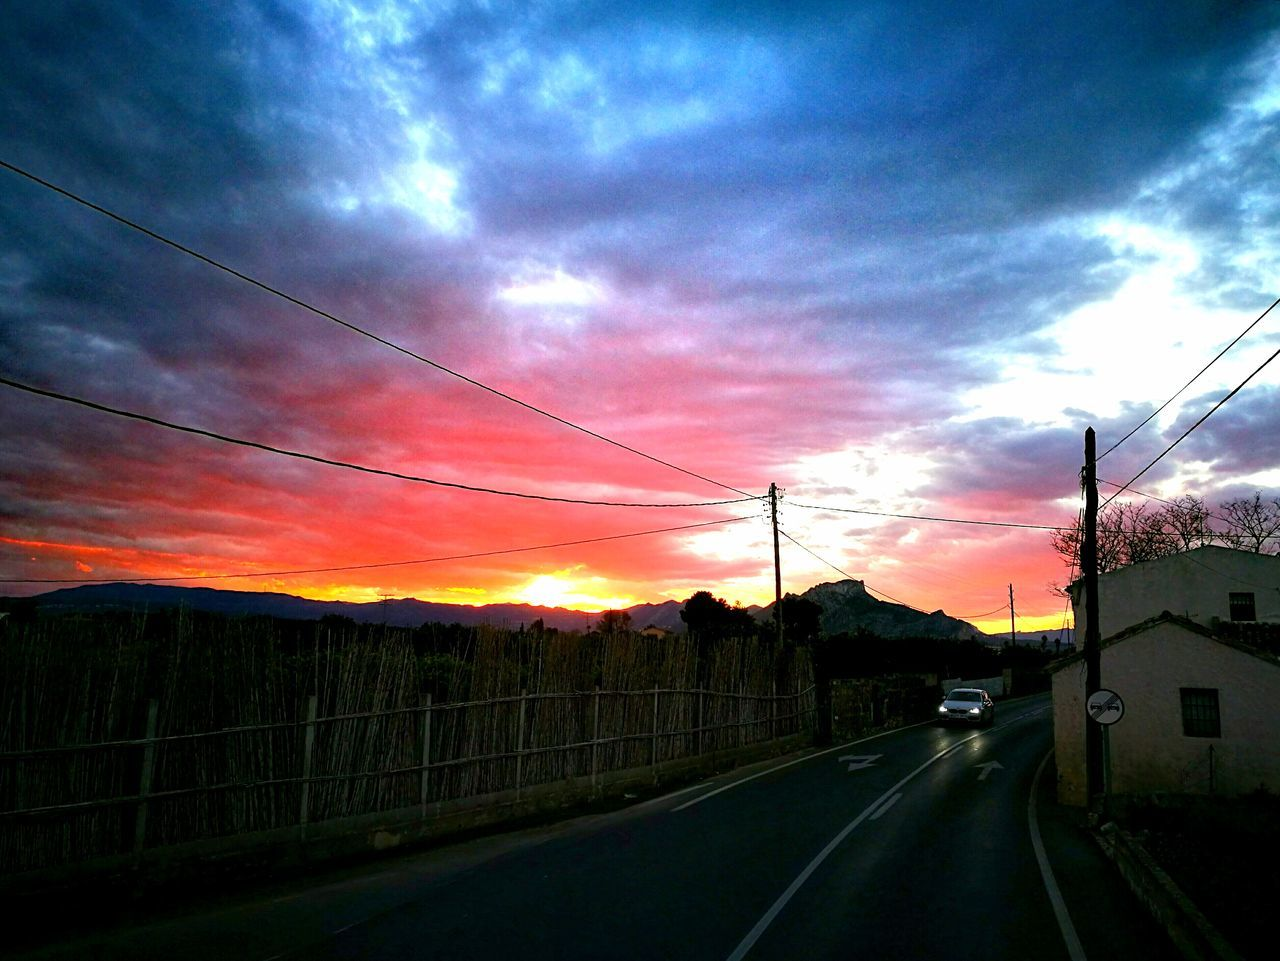 Sunset Dramatic Sky Sky Dusk Nature Rural Scene Road Transportation No People Idyllic Cloud - Sky The Way Forward Beauty In Nature Scenics Tree Outdoors Wet Agriculture Landscape Motion